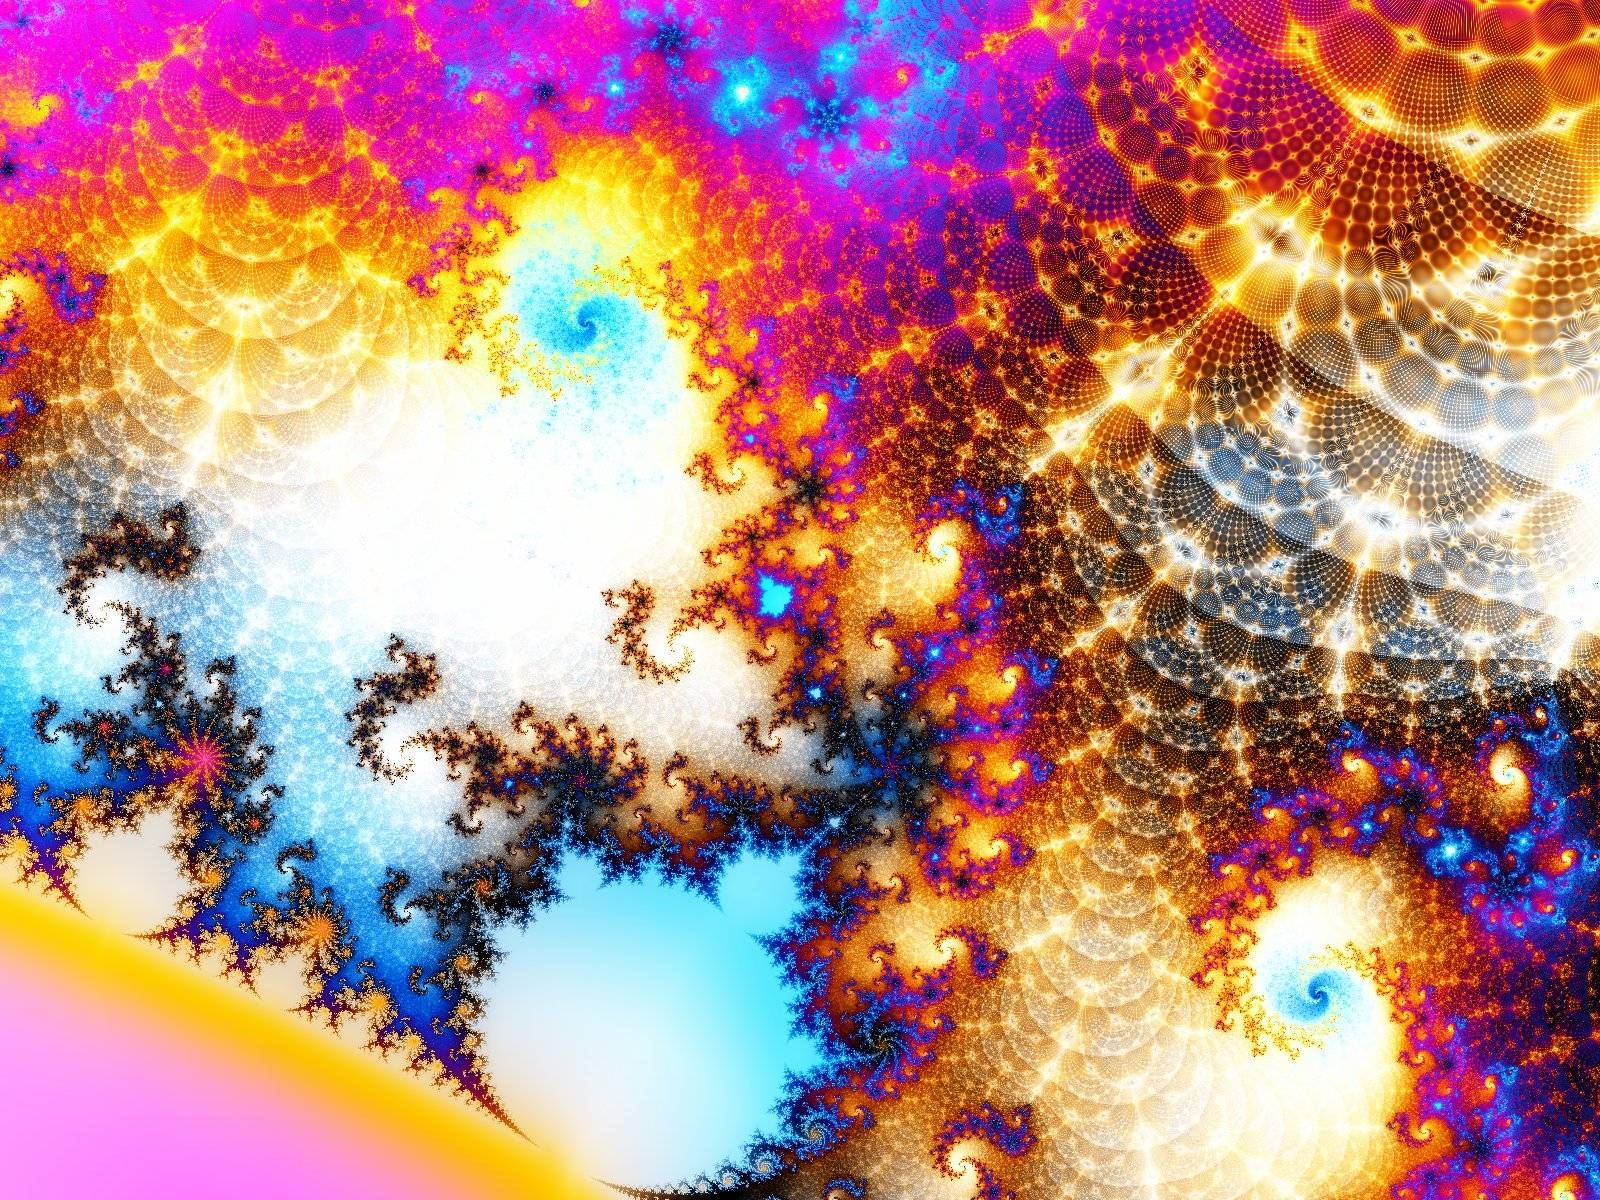 Mandelbrot wallpapers Vchira 2 by rossman